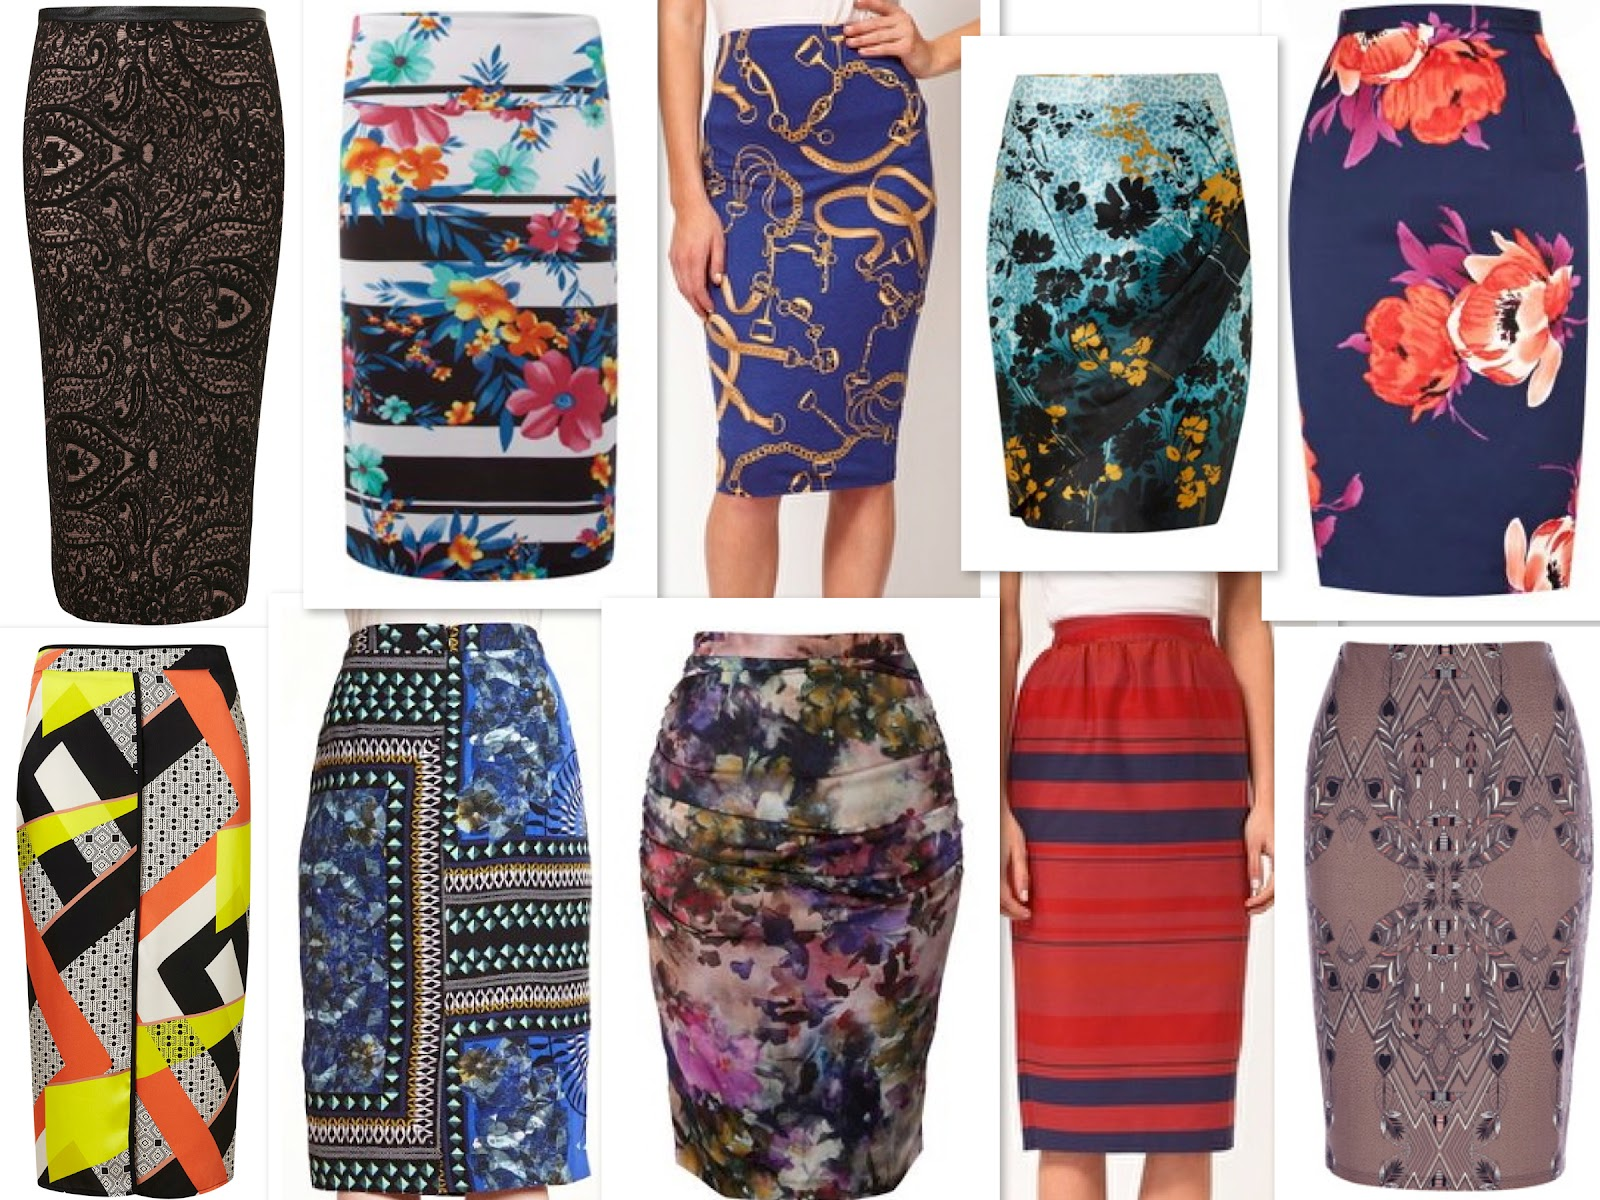 Lemonade Pockets: Printed pencil skirts